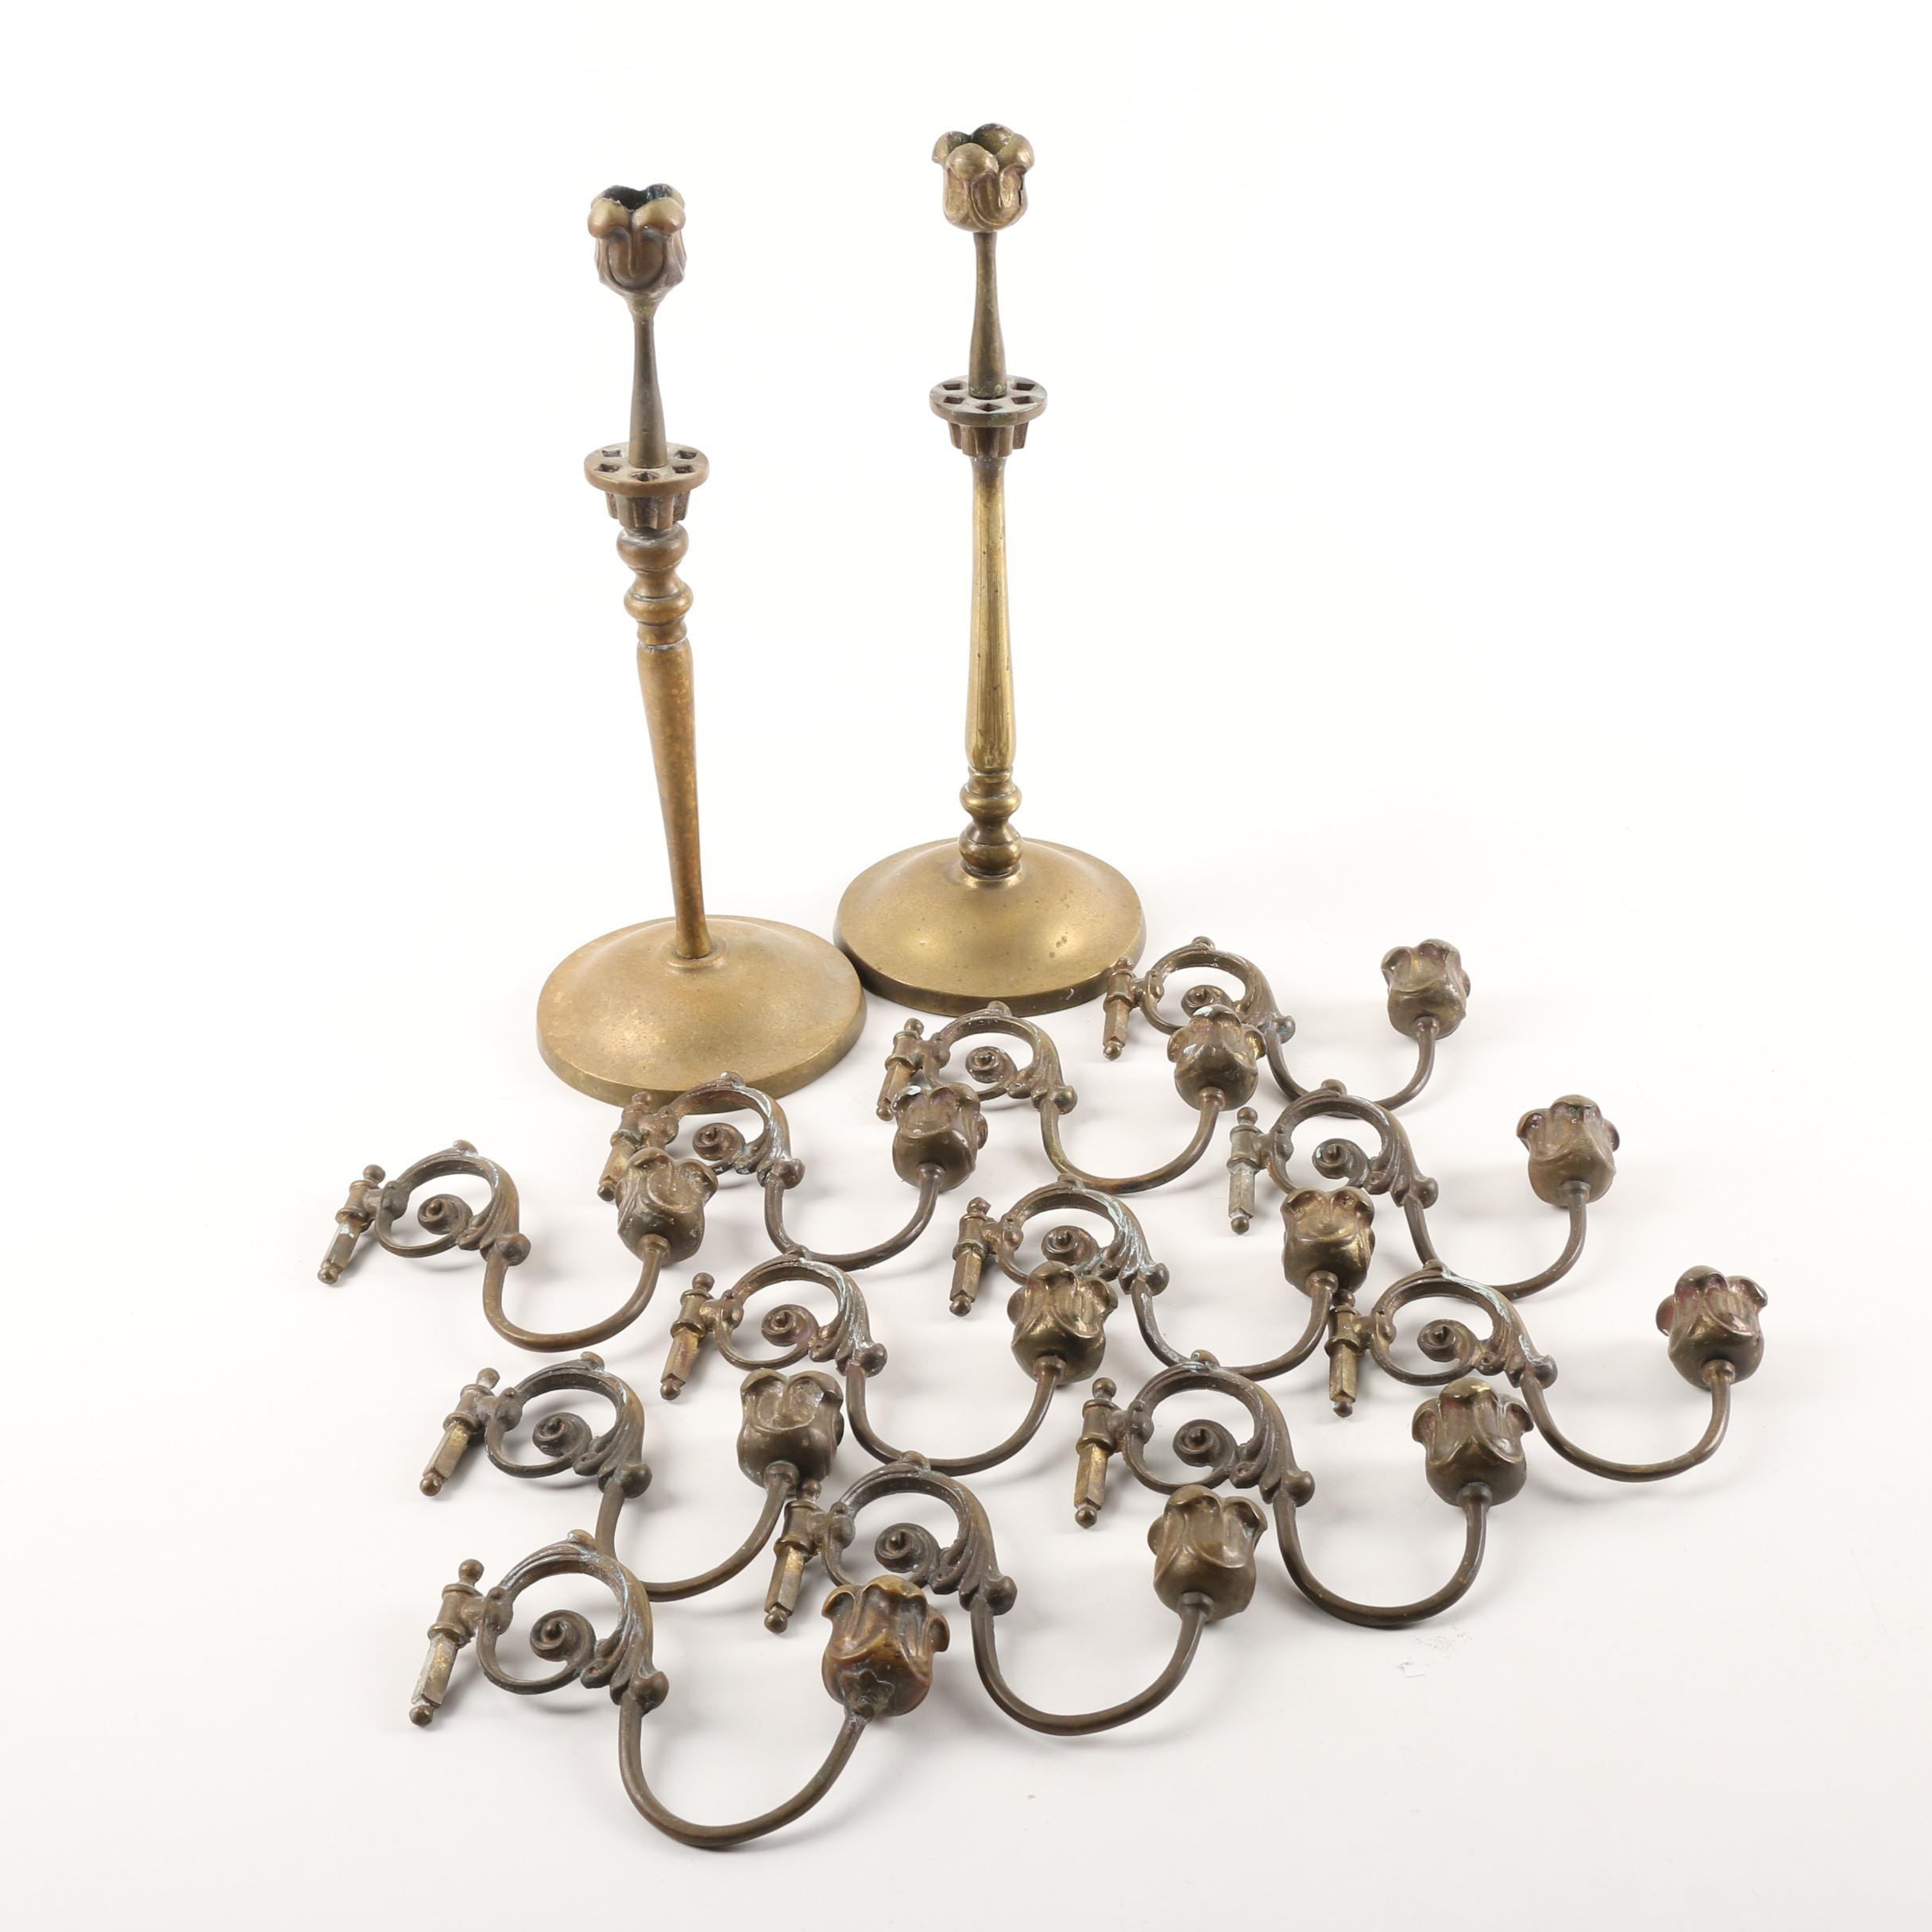 Vintage Brass Candle Holders with Adjustable Arms